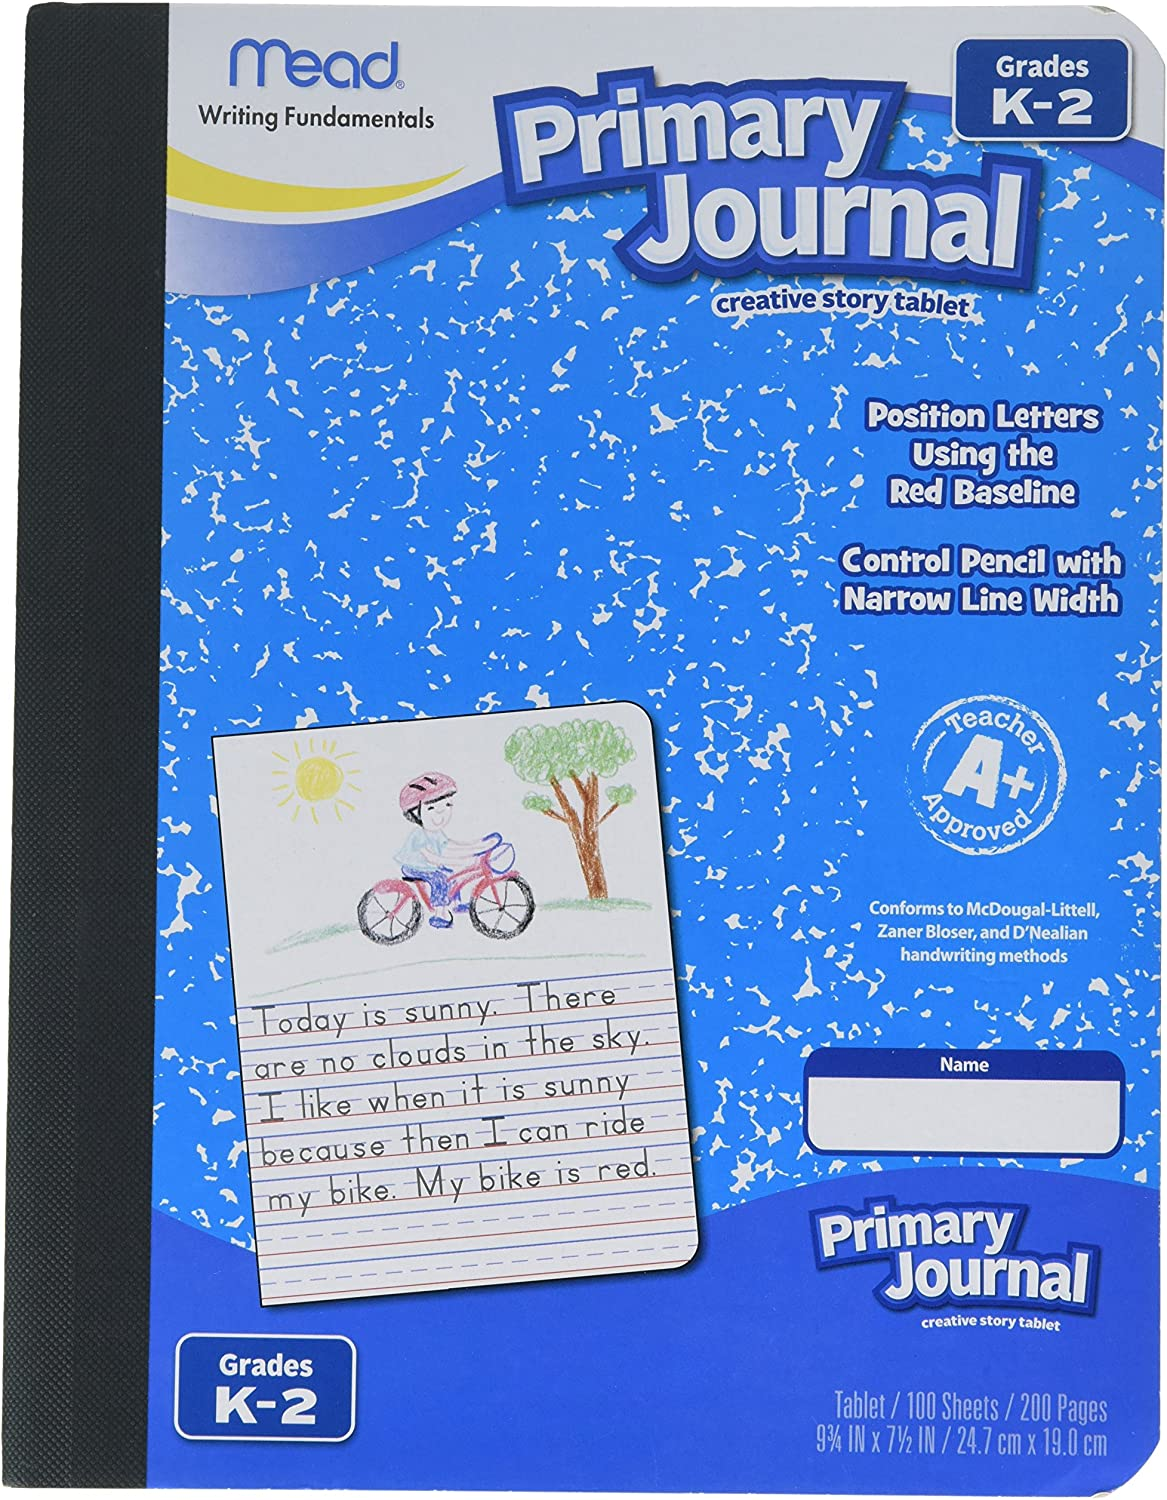 5 Pack Of Mead Free shipping anywhere in the nation MEA09956 Max 51% OFF Journal Primary Grade K-2nd